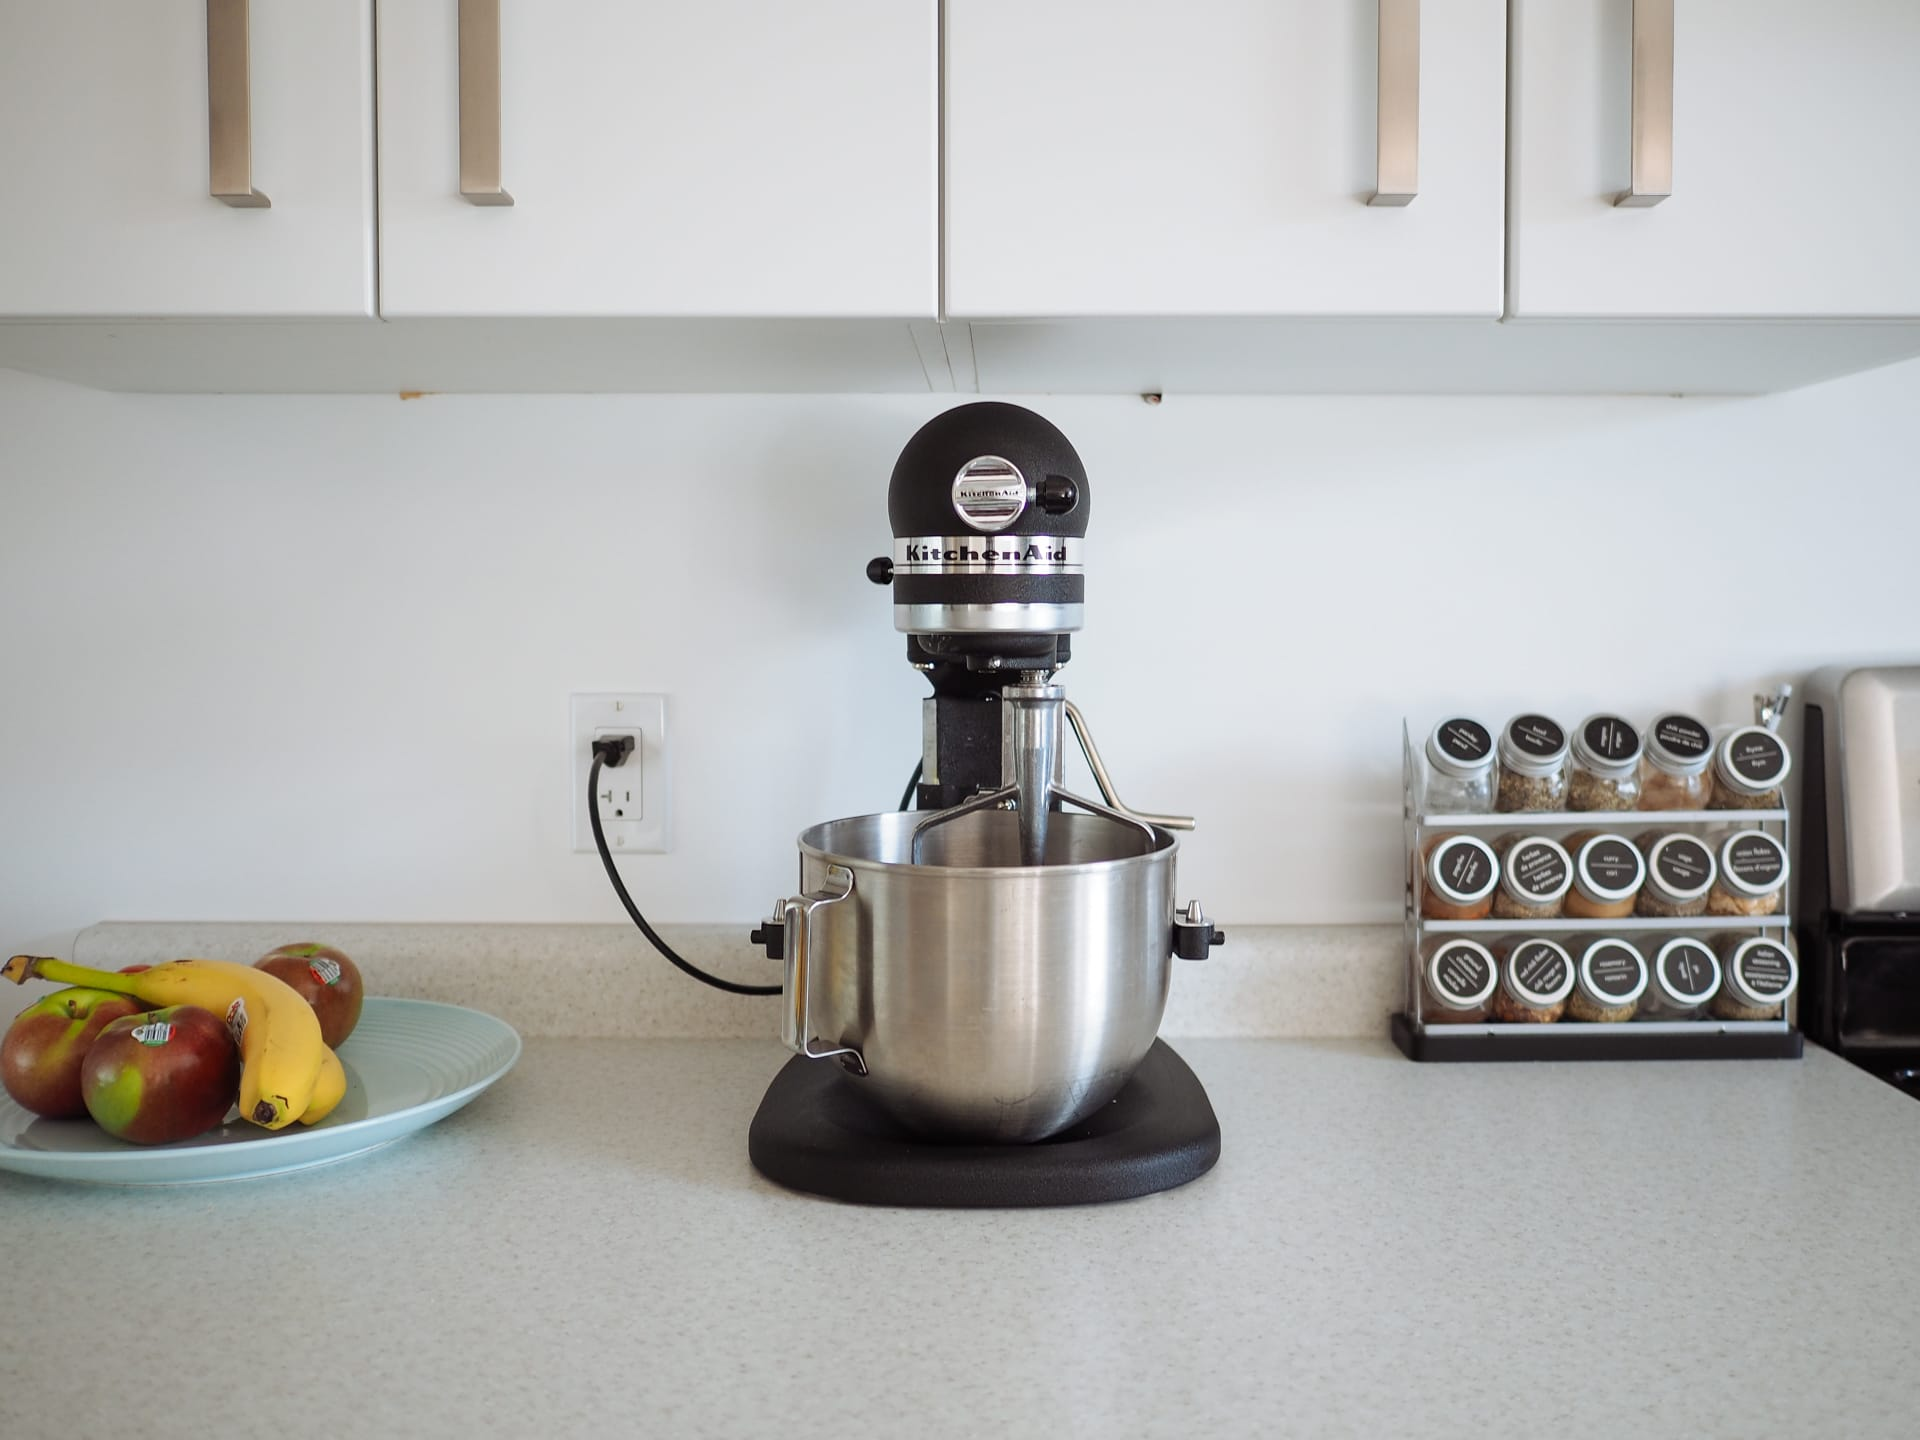 A Review of the KitchenAid Pro 450 Mixer — Tools and Toys